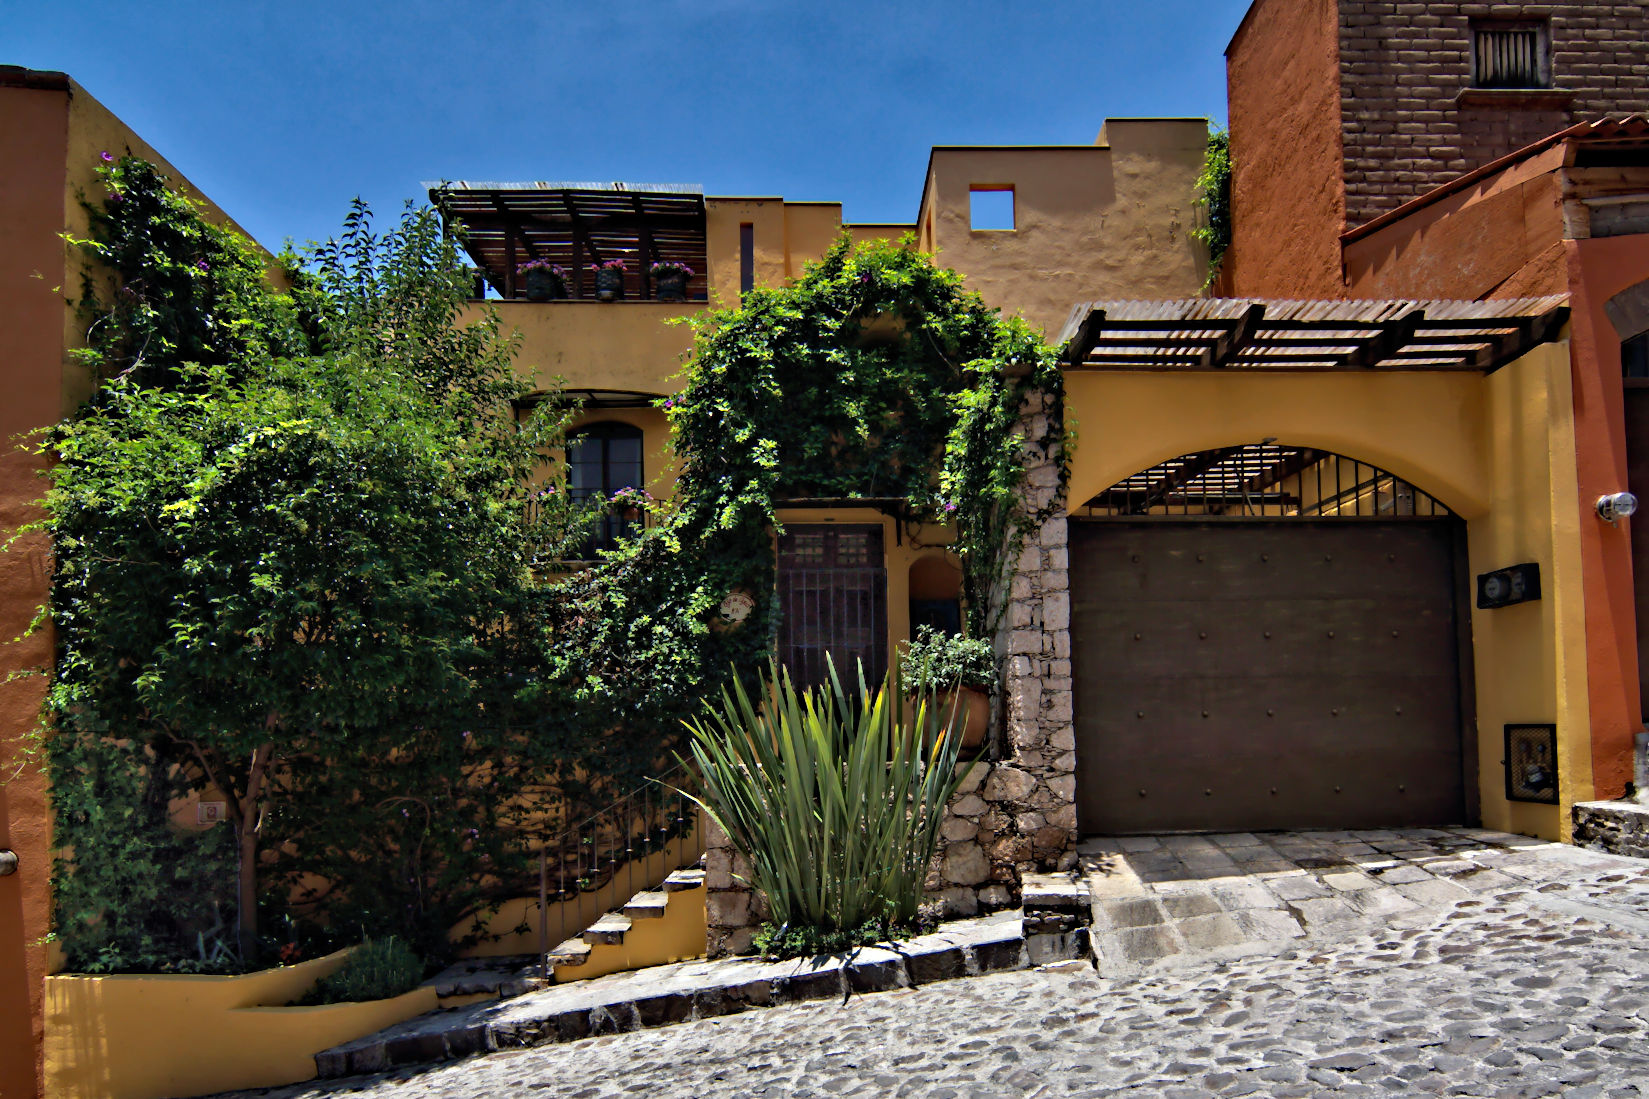 Single Family Home for Sale at CASA AMARILLO Ojo De Agua, San Miguel De Allende, Guanajuato Mexico